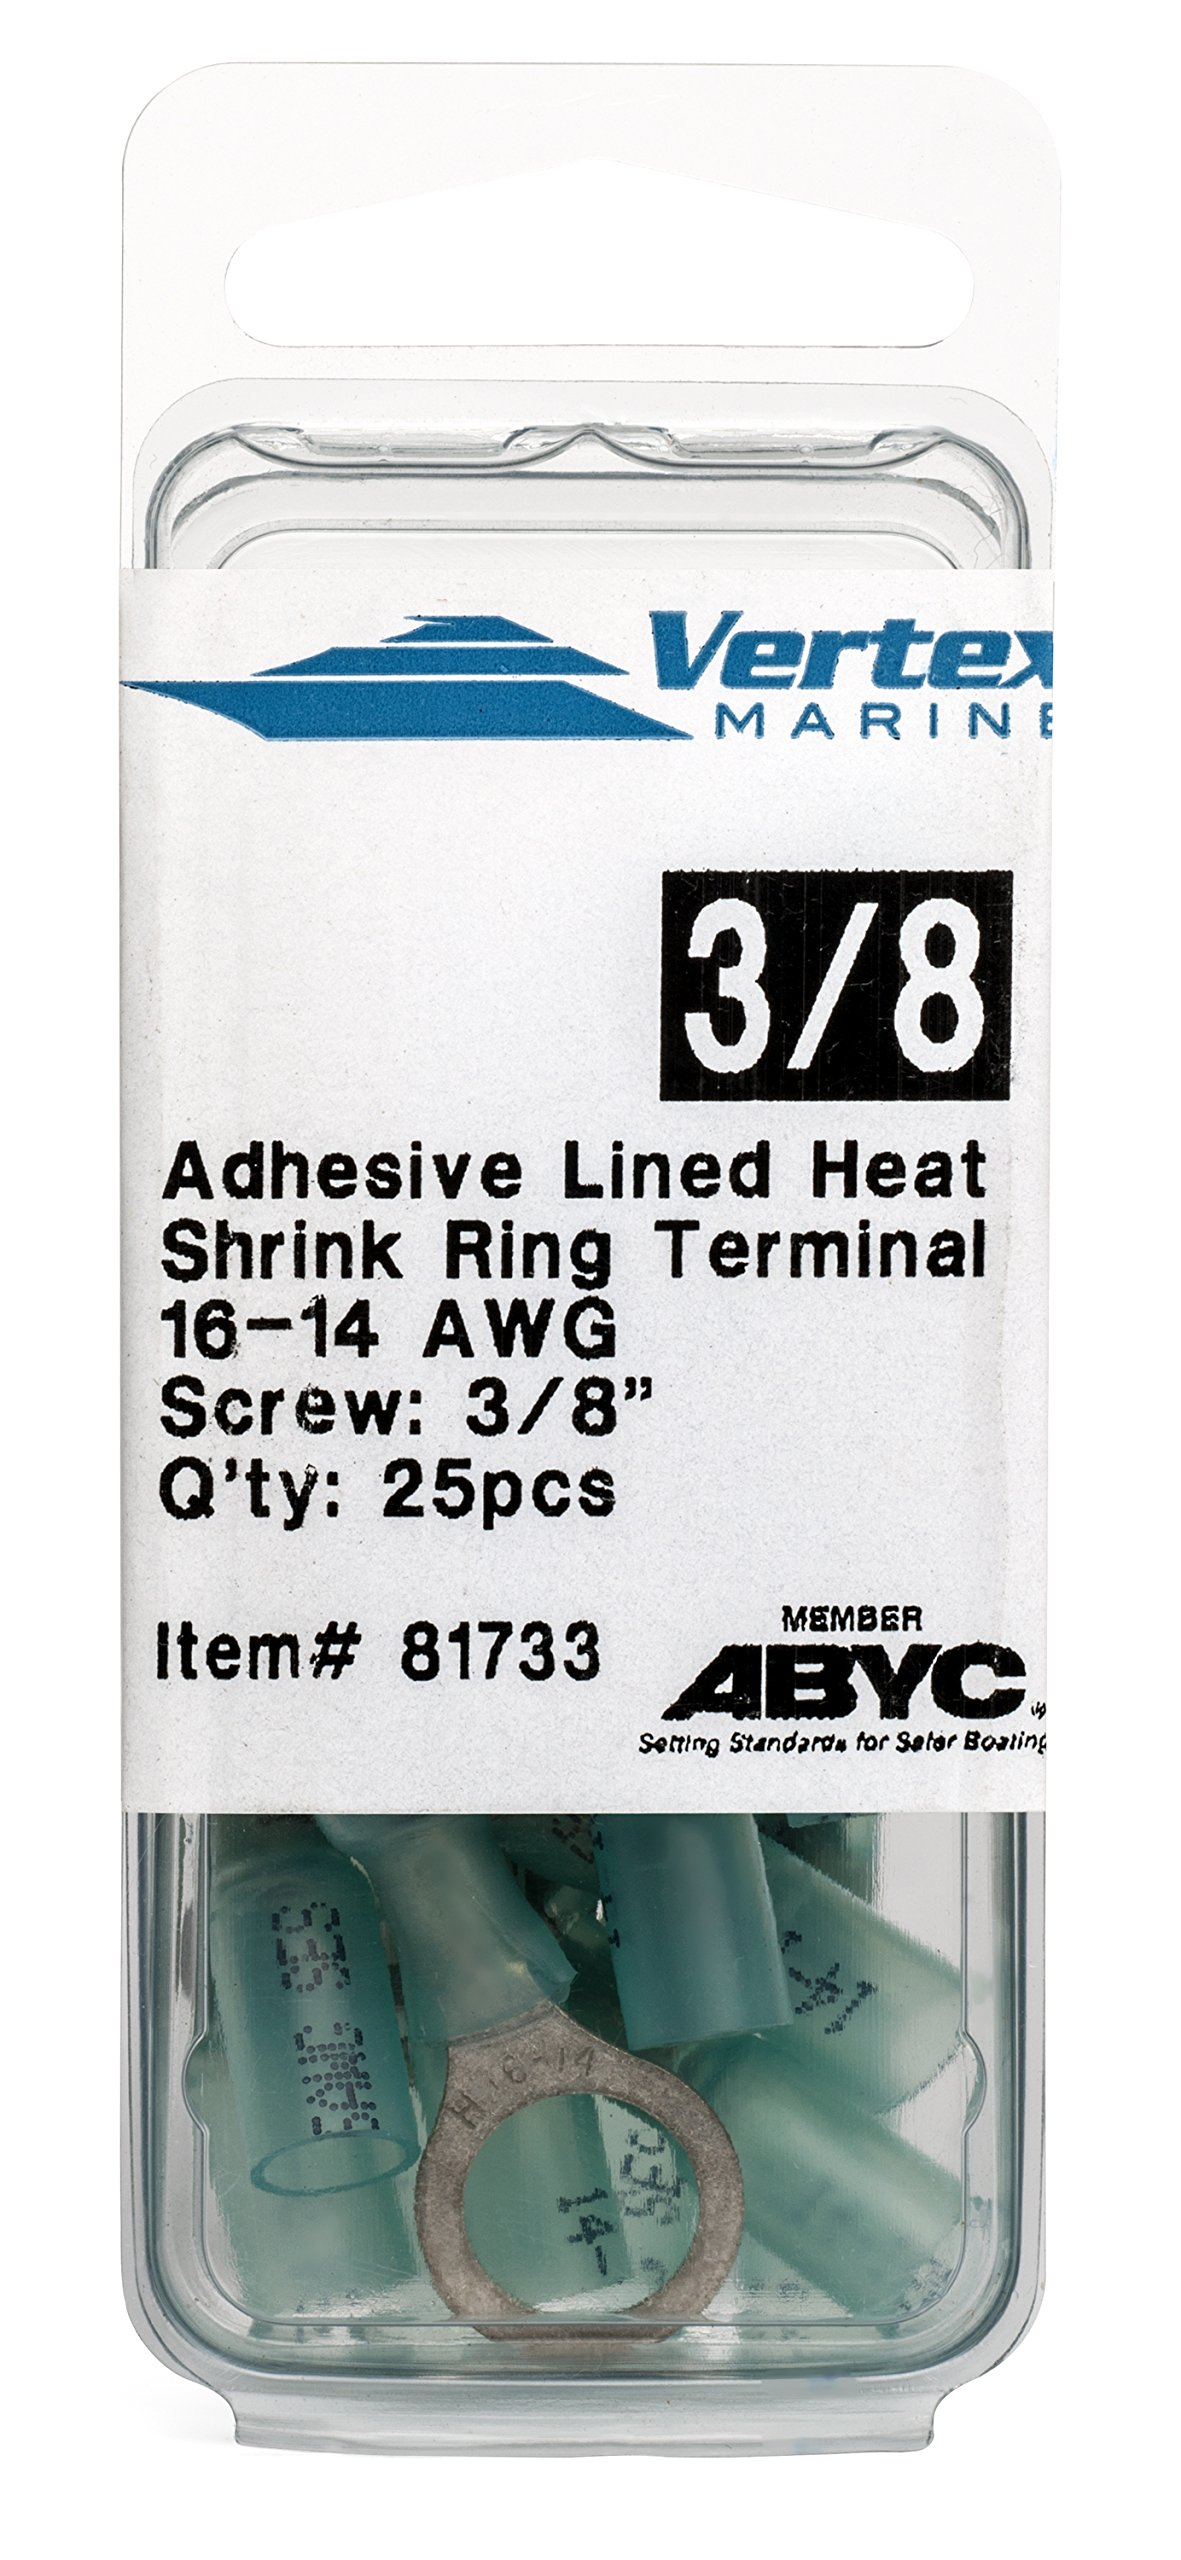 EWCS Ring Terminal Marine Grade - Adhesive Lined Heat Shrink - A81733-16-14 AWG - 3/8'' Stud - 25 Pack